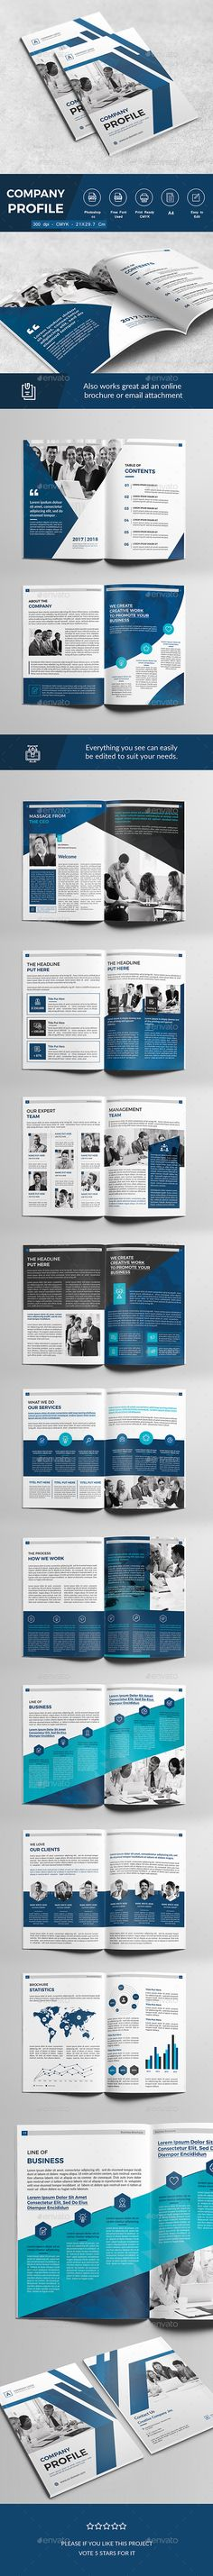 Company Profile Template PSD - Corporate Brochures